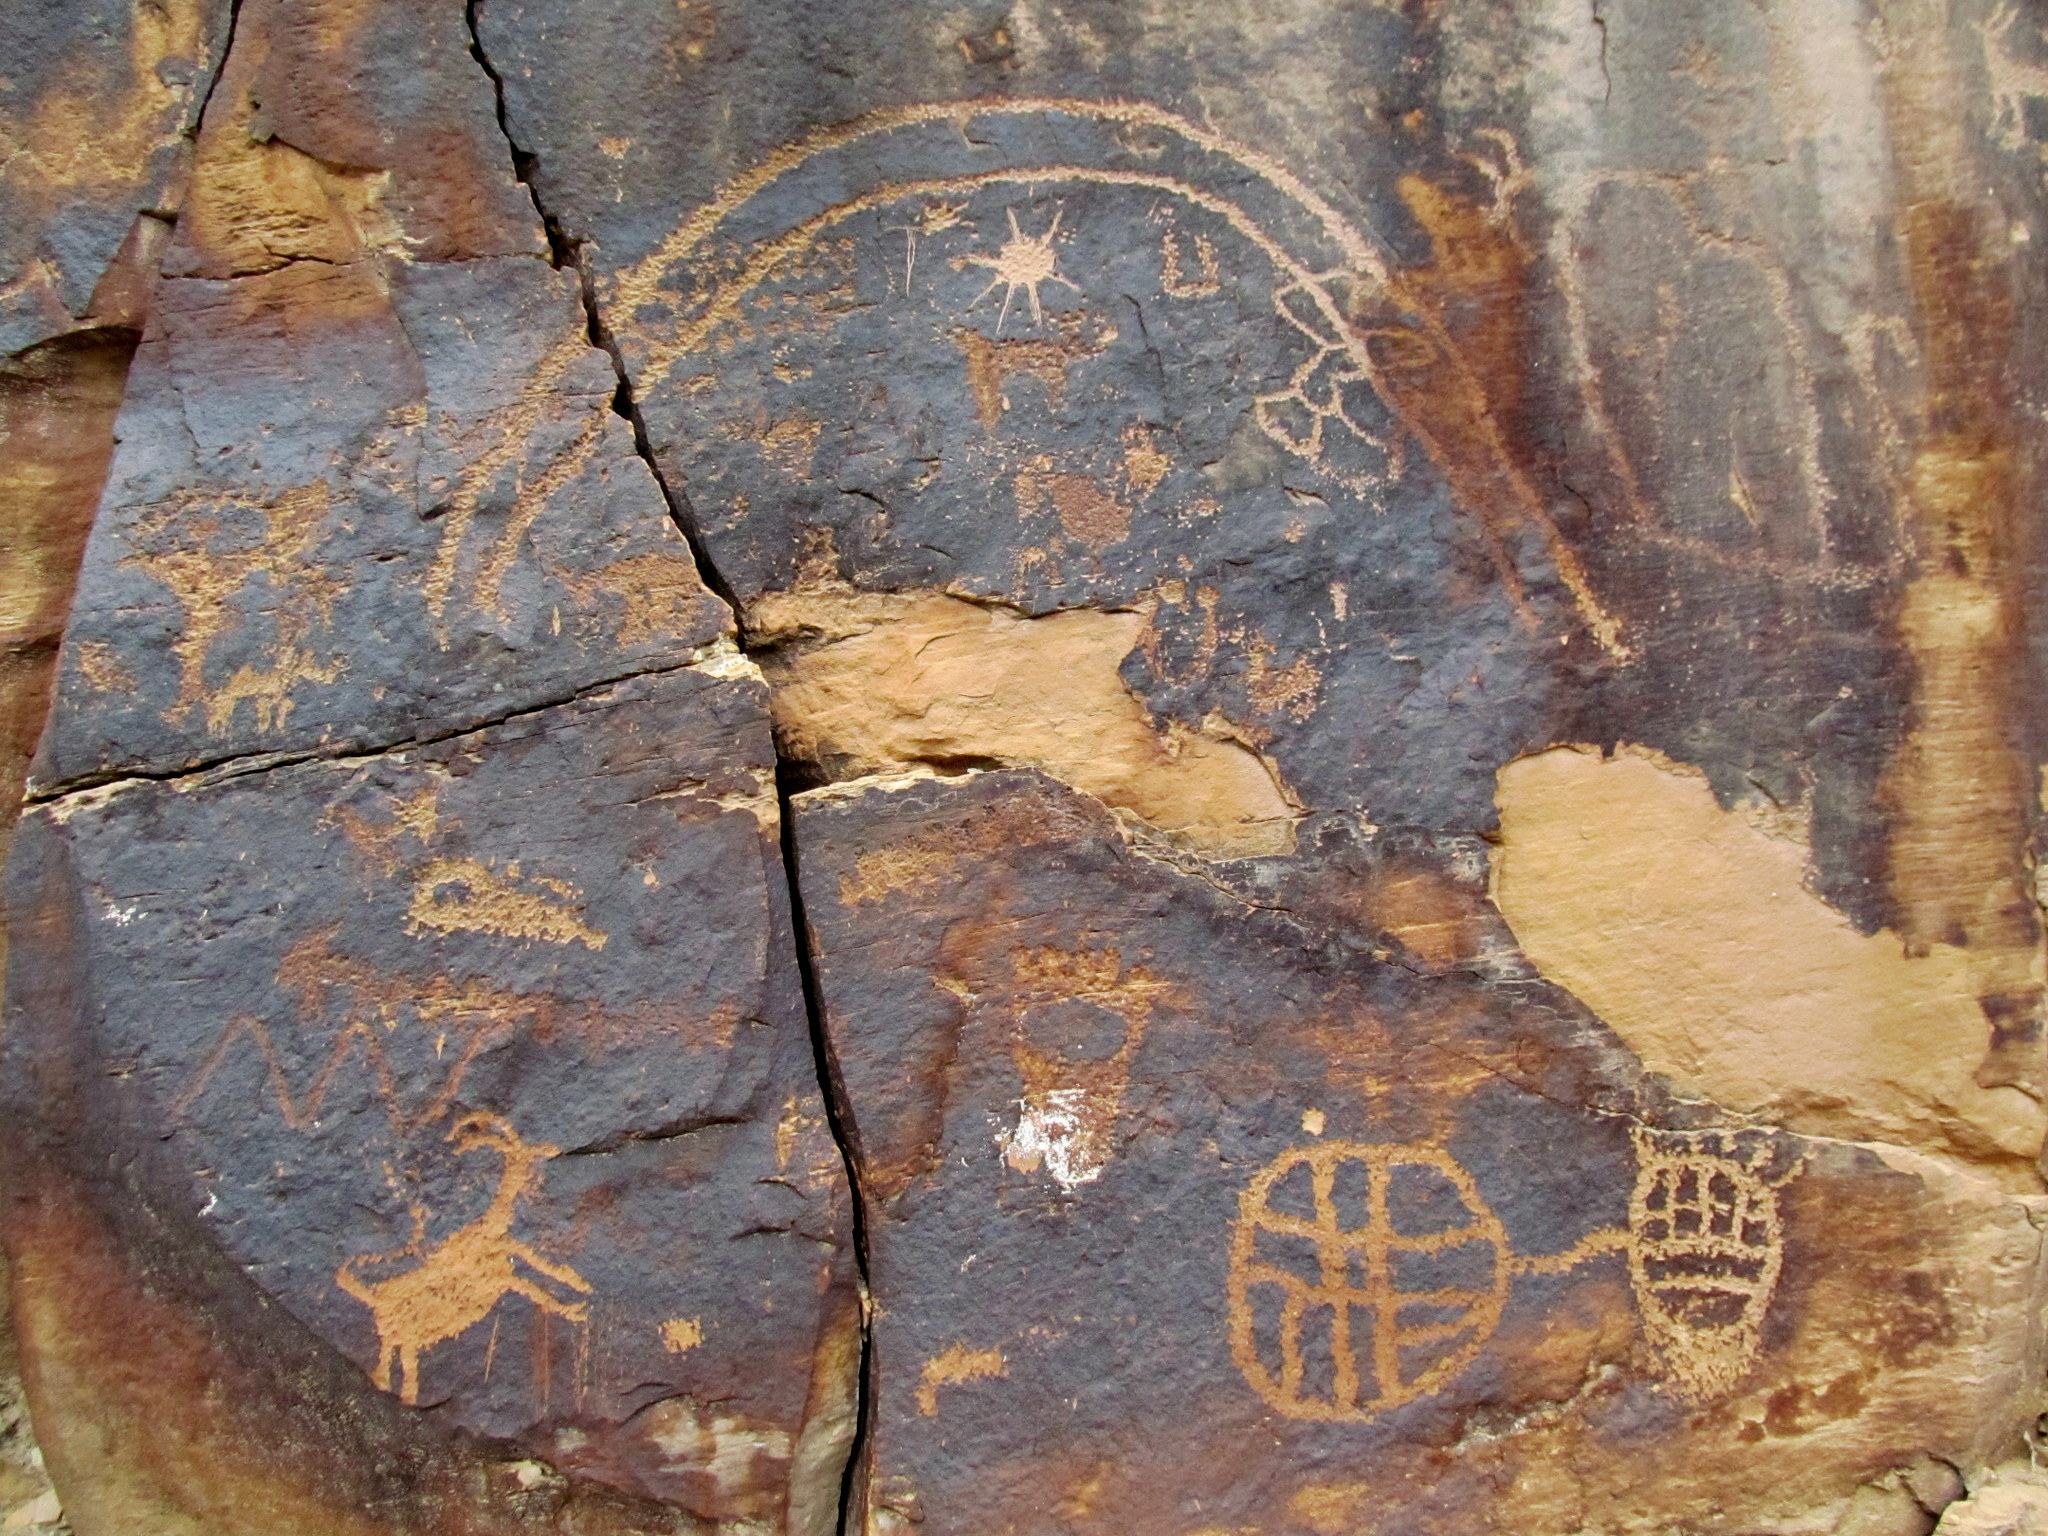 Photo: An arc and other petroglyphs